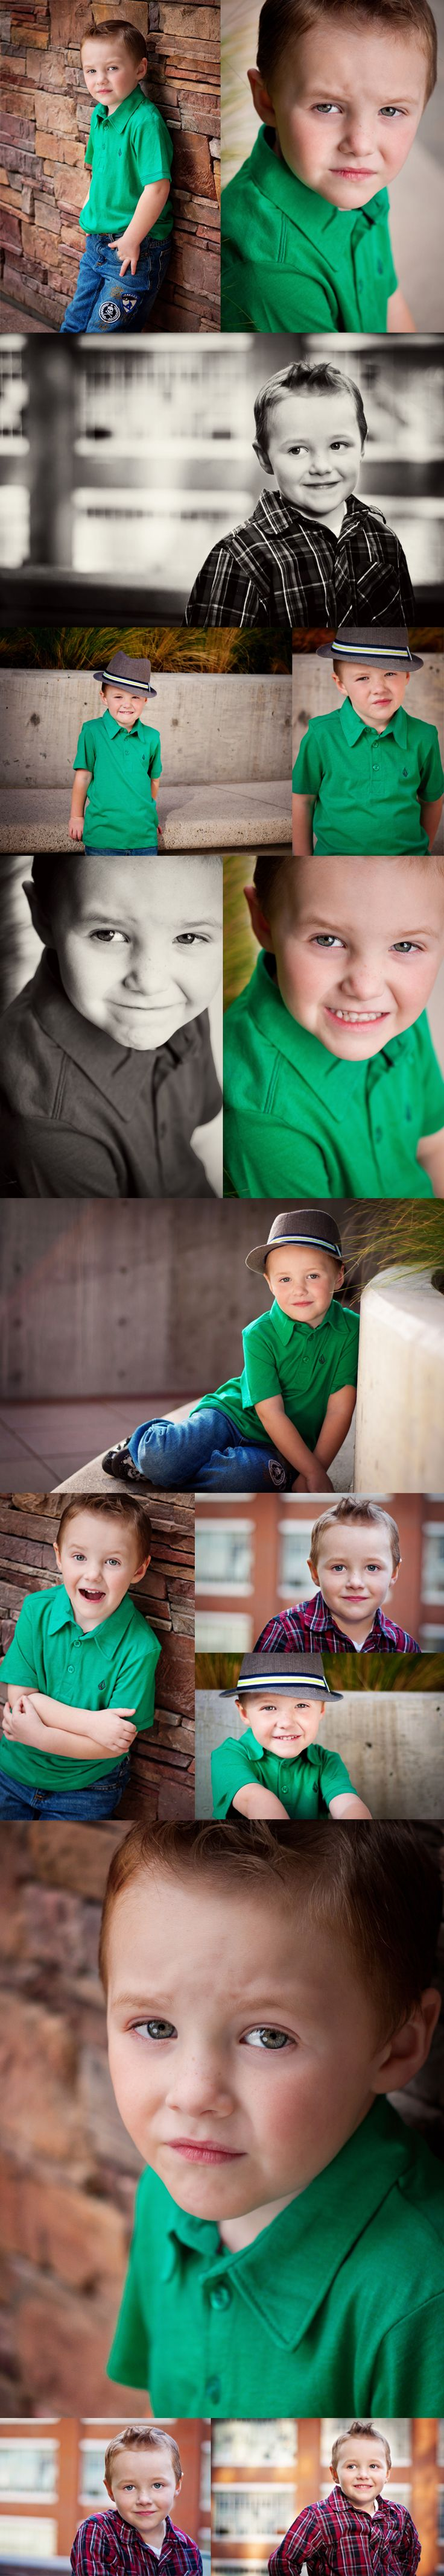 Child Portrait Session, #photography, #poses, #kids